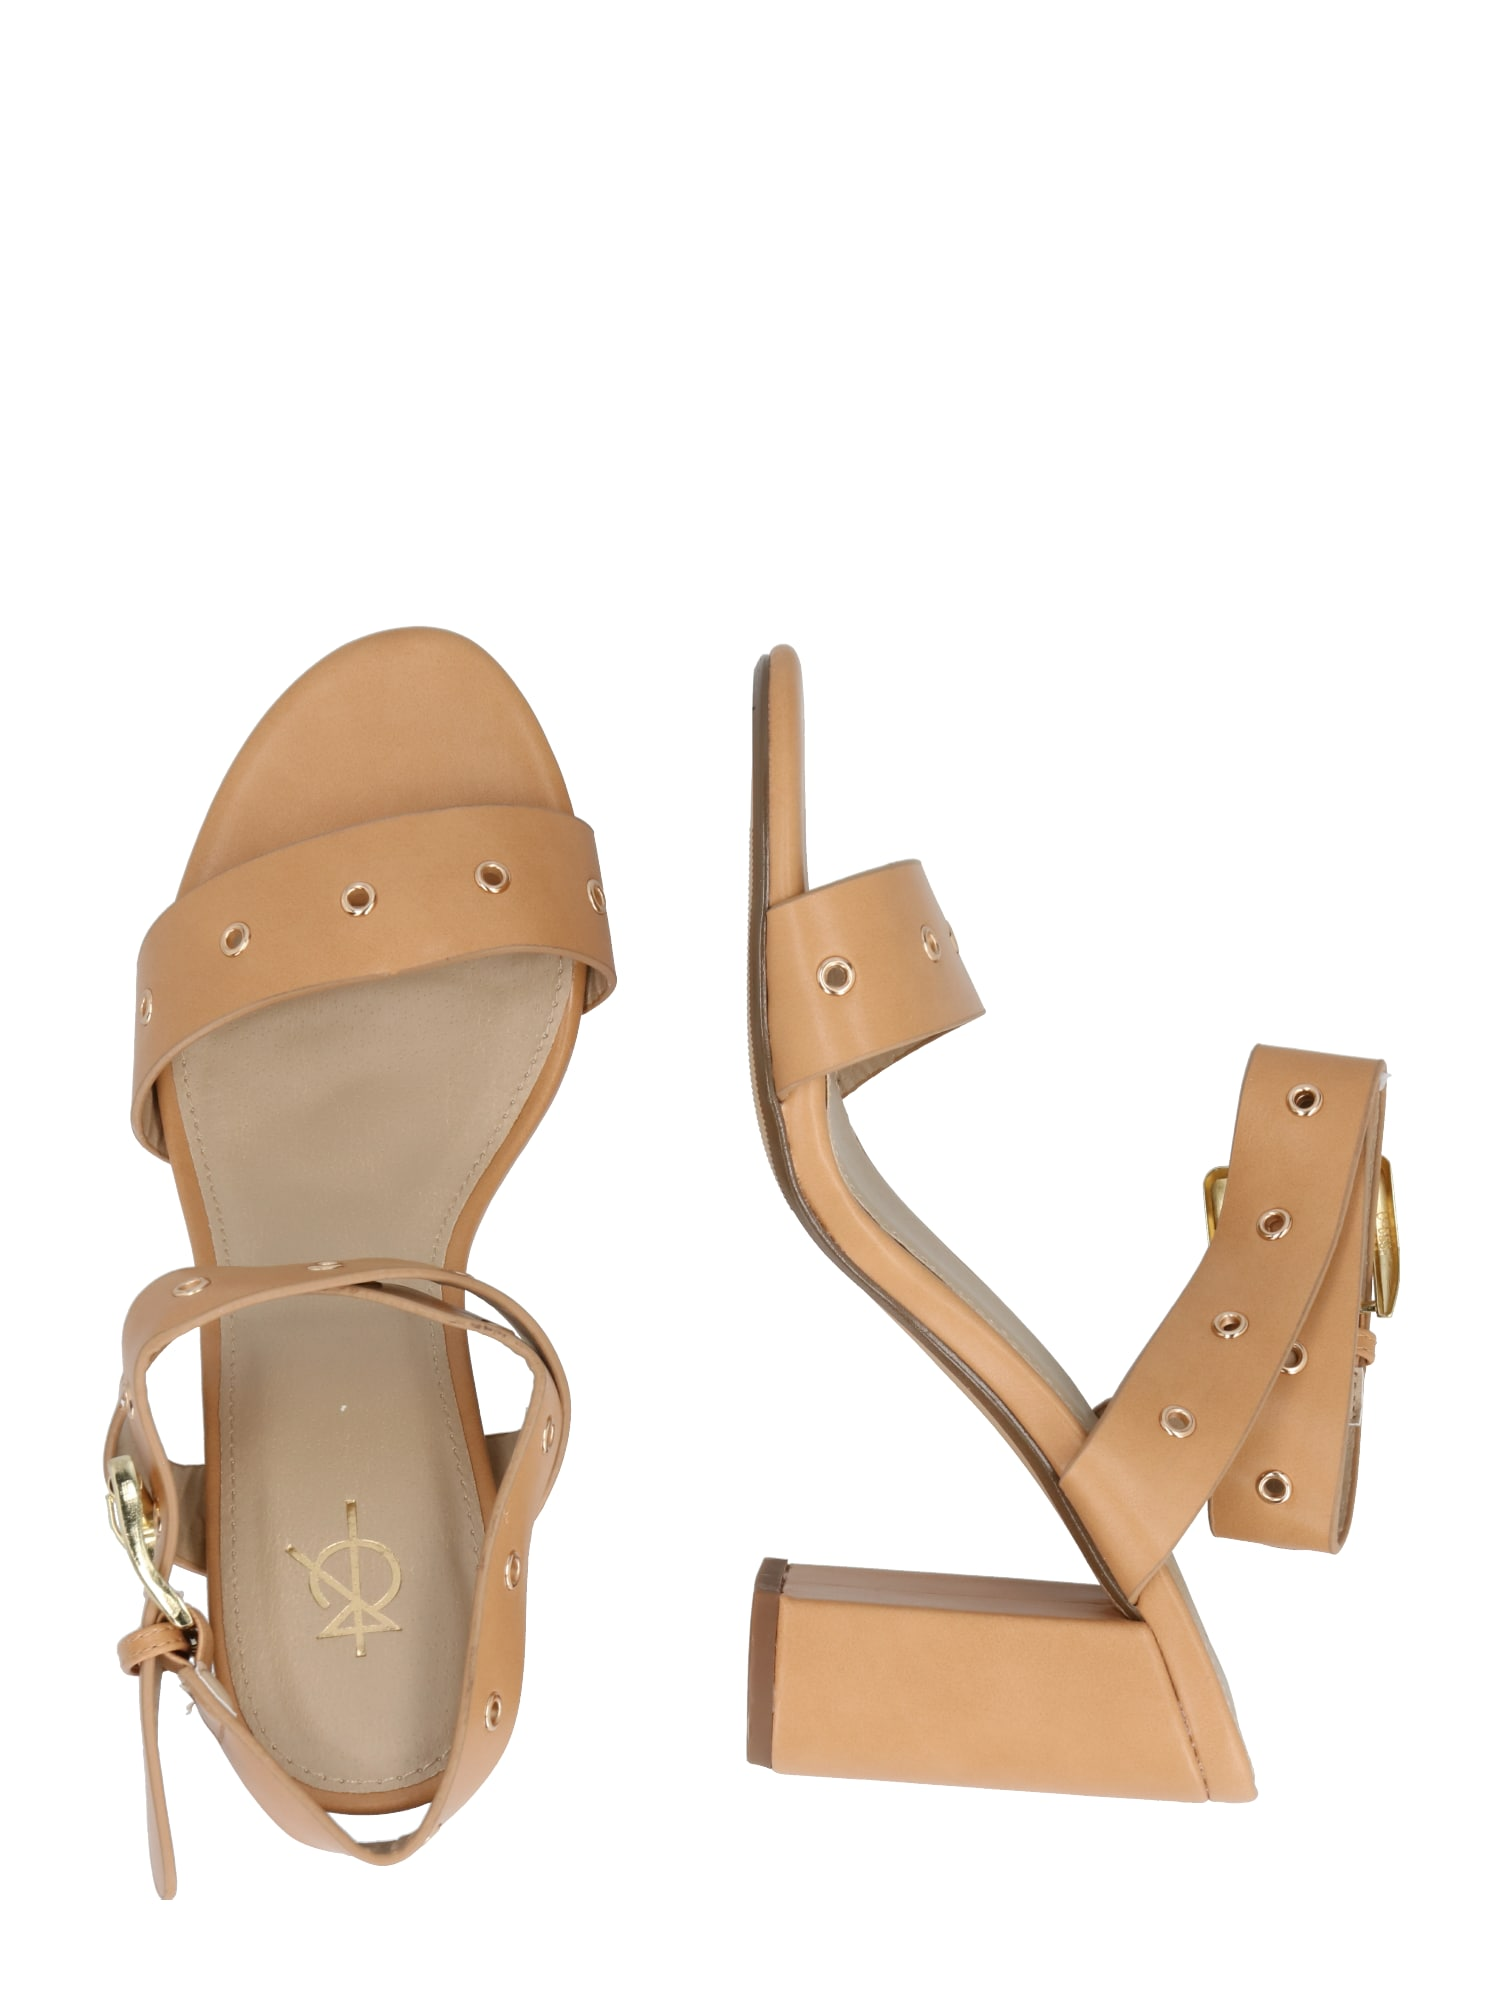 4th & Reckless Sandal 'Adrianna'  nude